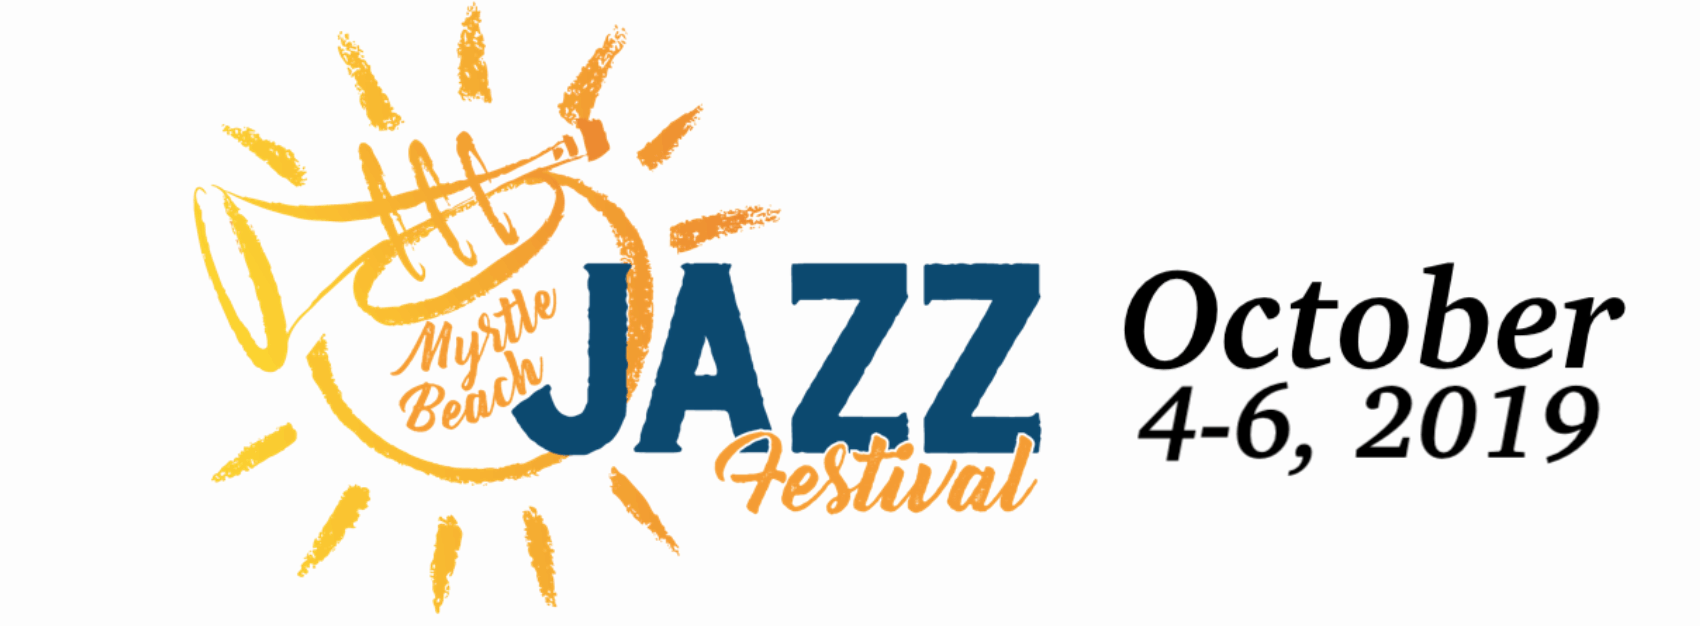 Fourth annual Myrtle Beach Jazz Festival